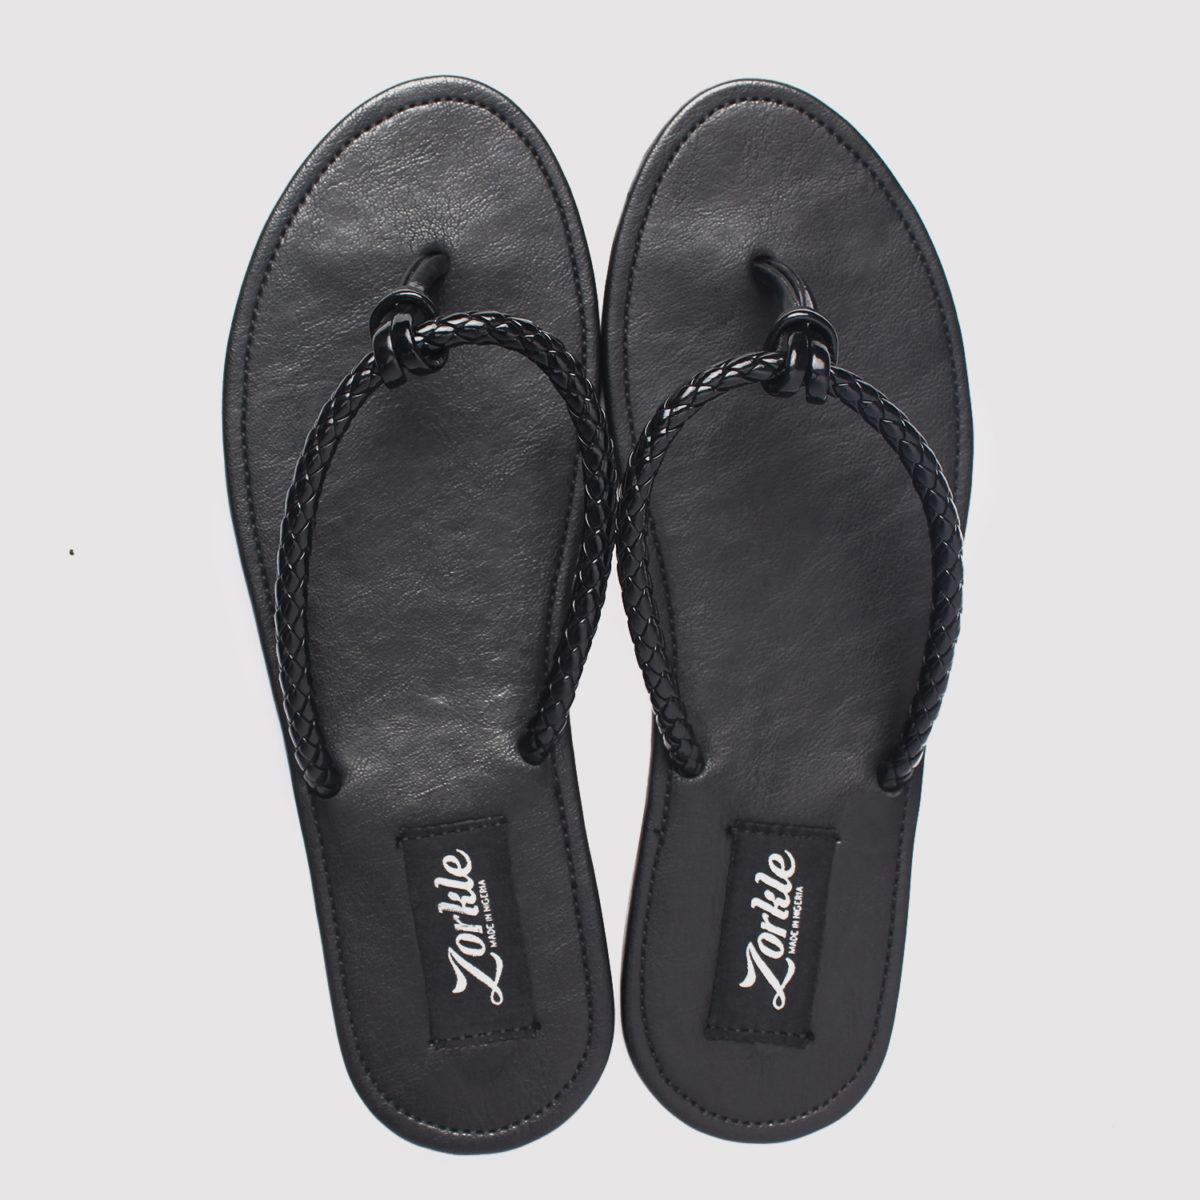 Roller Slippers Black Leather ZMP076 - Zorkles Shoes